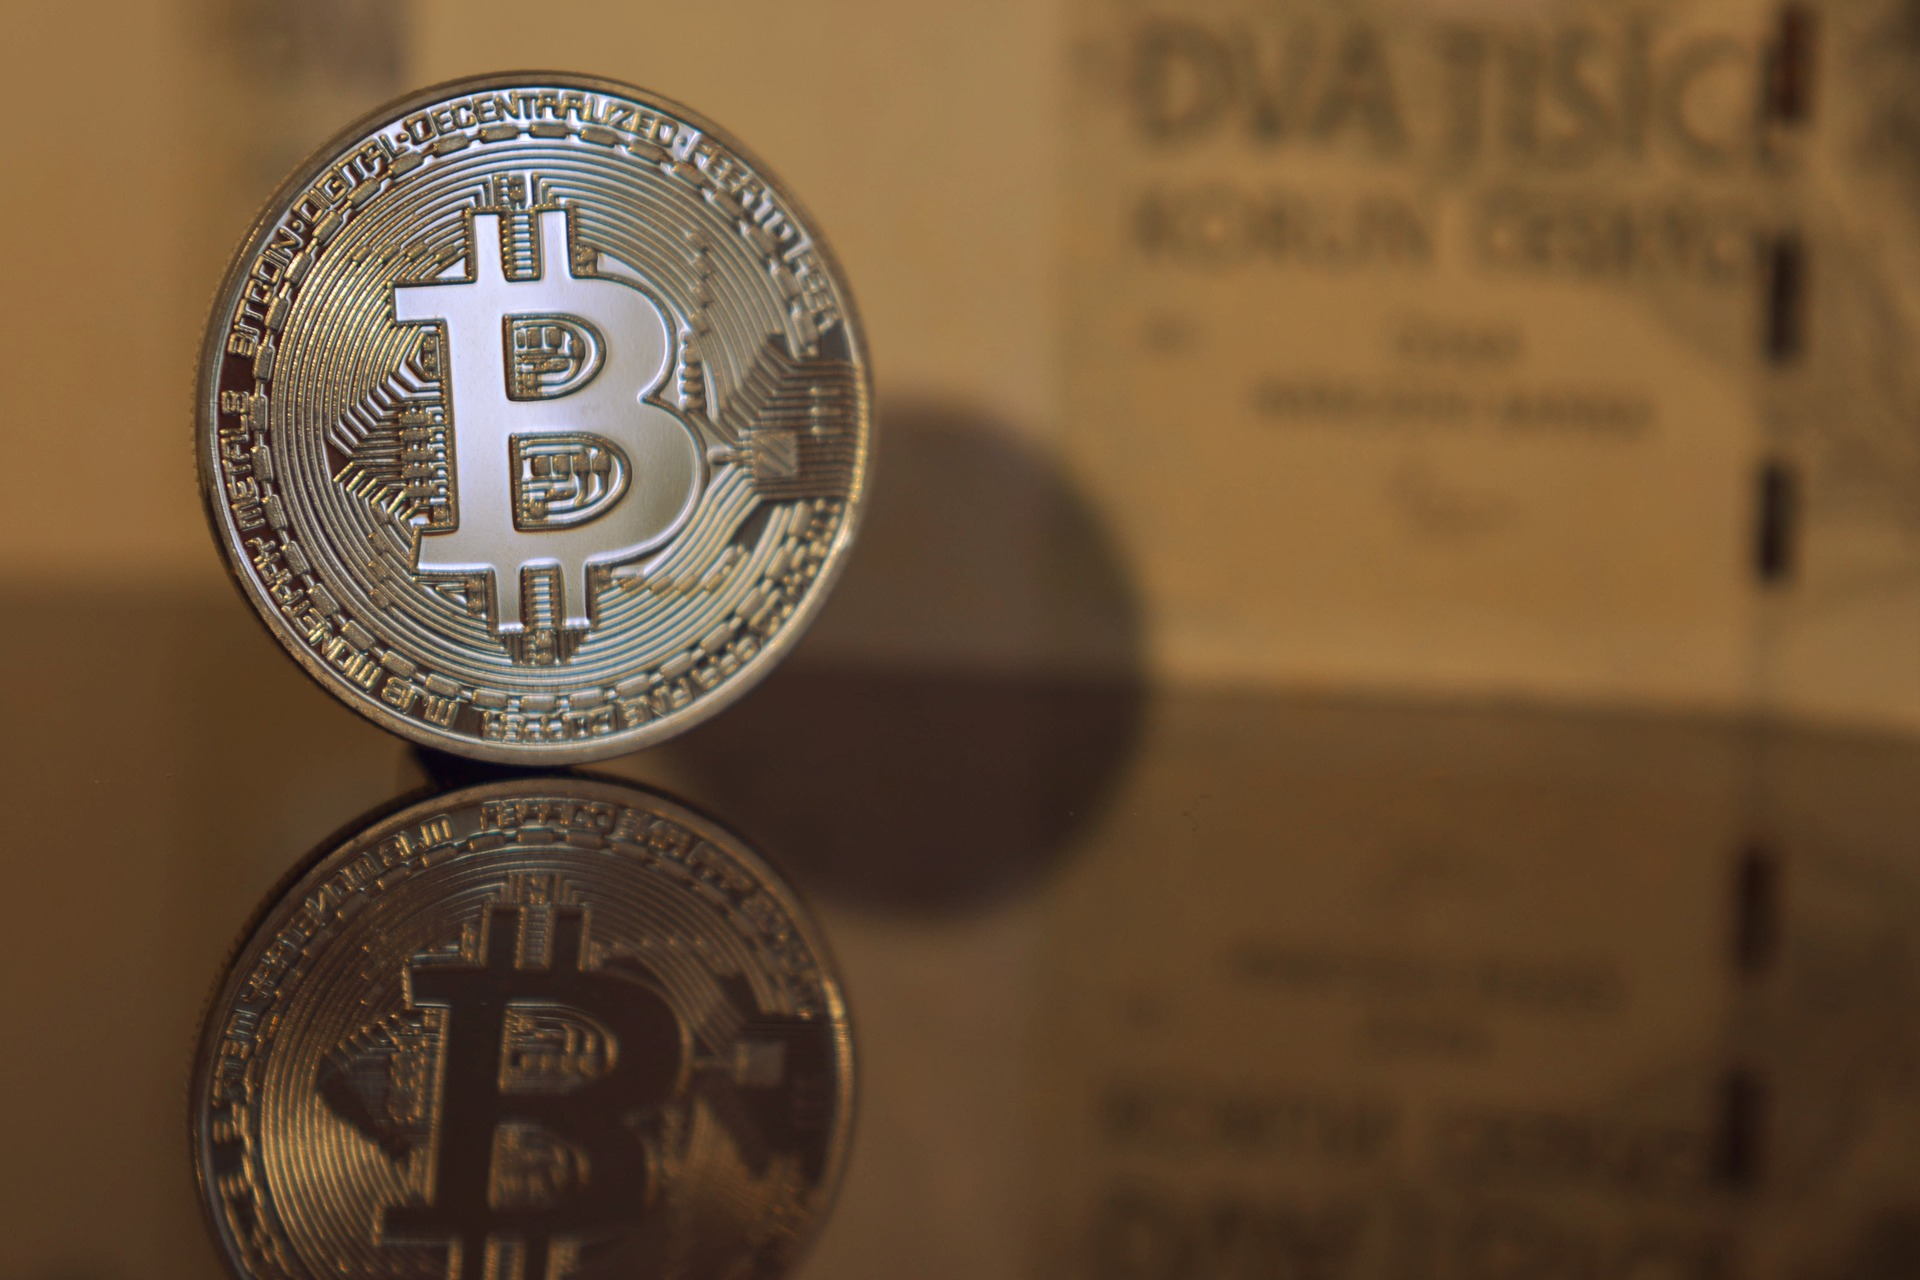 A Sales Consultant In UK Found Guilty Of Sending BTC To The Terrorist Organization IS